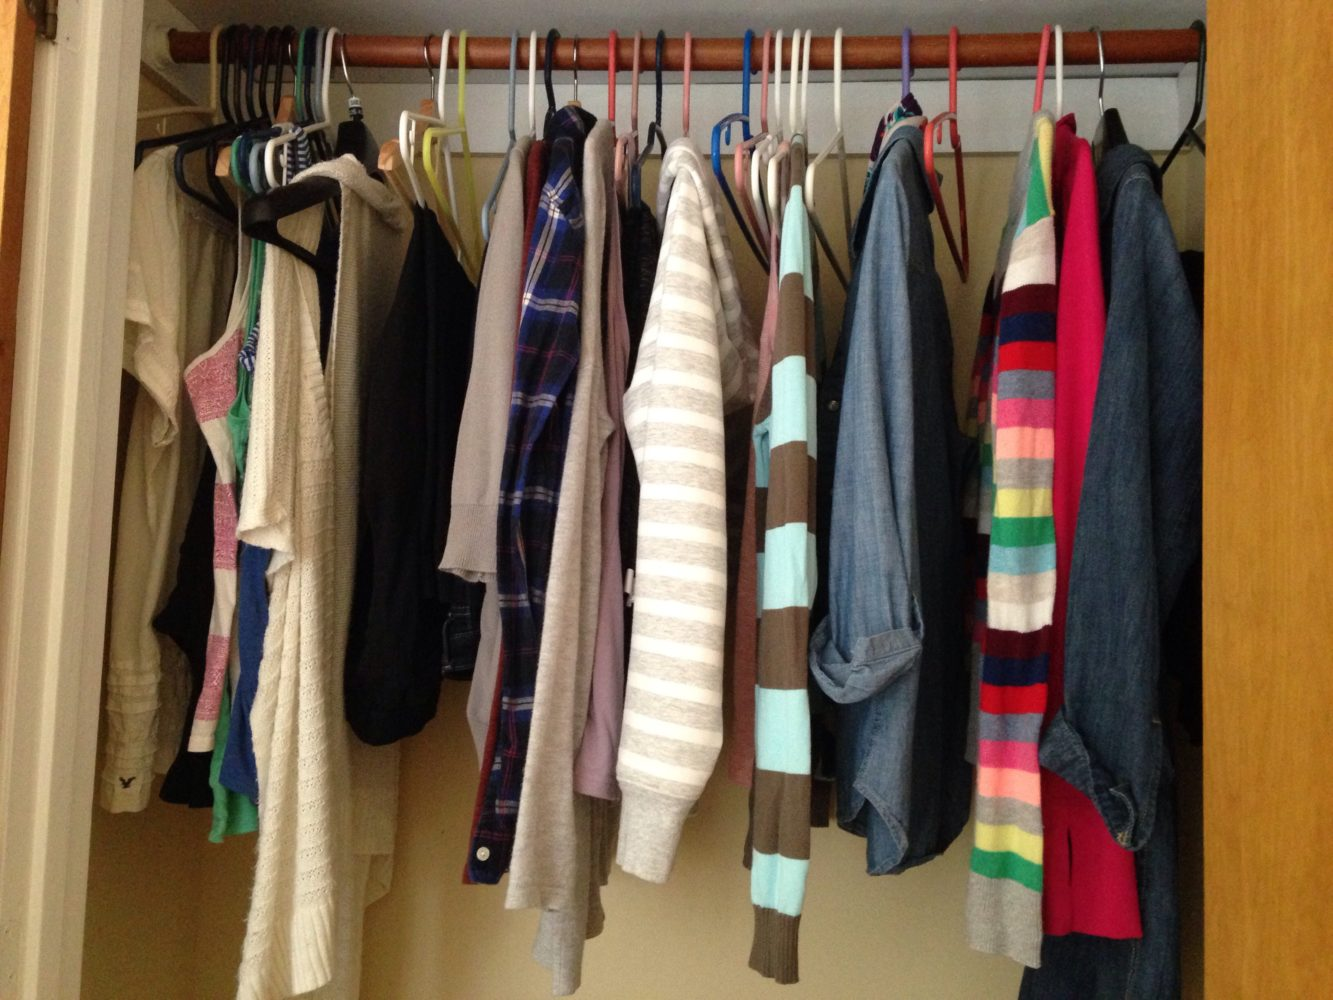 minimalist wardrobe, thrifty capsule wardrobe, frugal capsule wardrobe, affordable capsule wardrobe